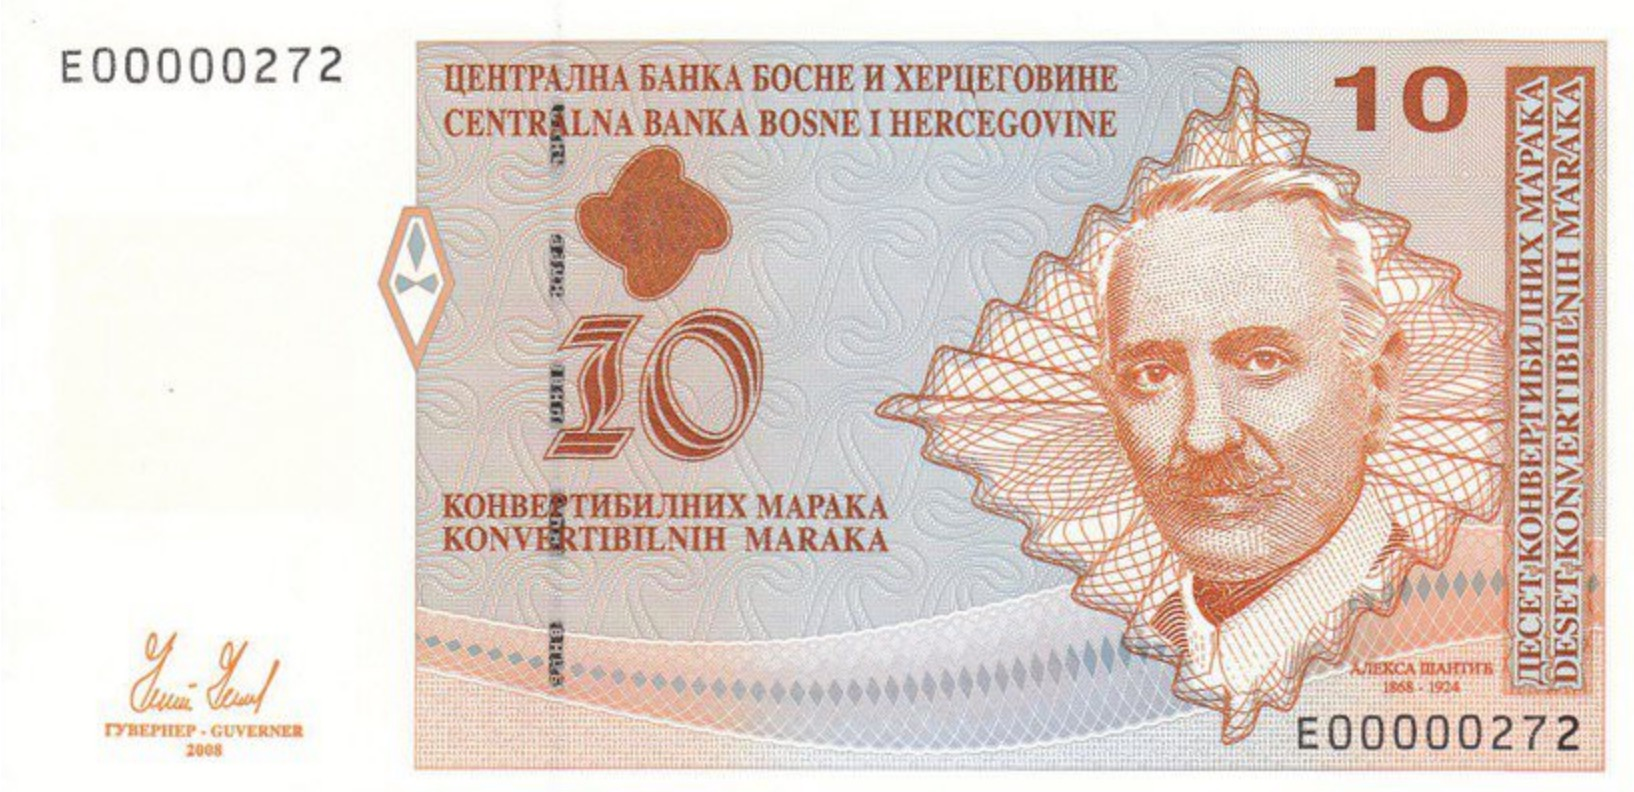 10 Konvertible Marks banknote Republika Srpska (2008 version)